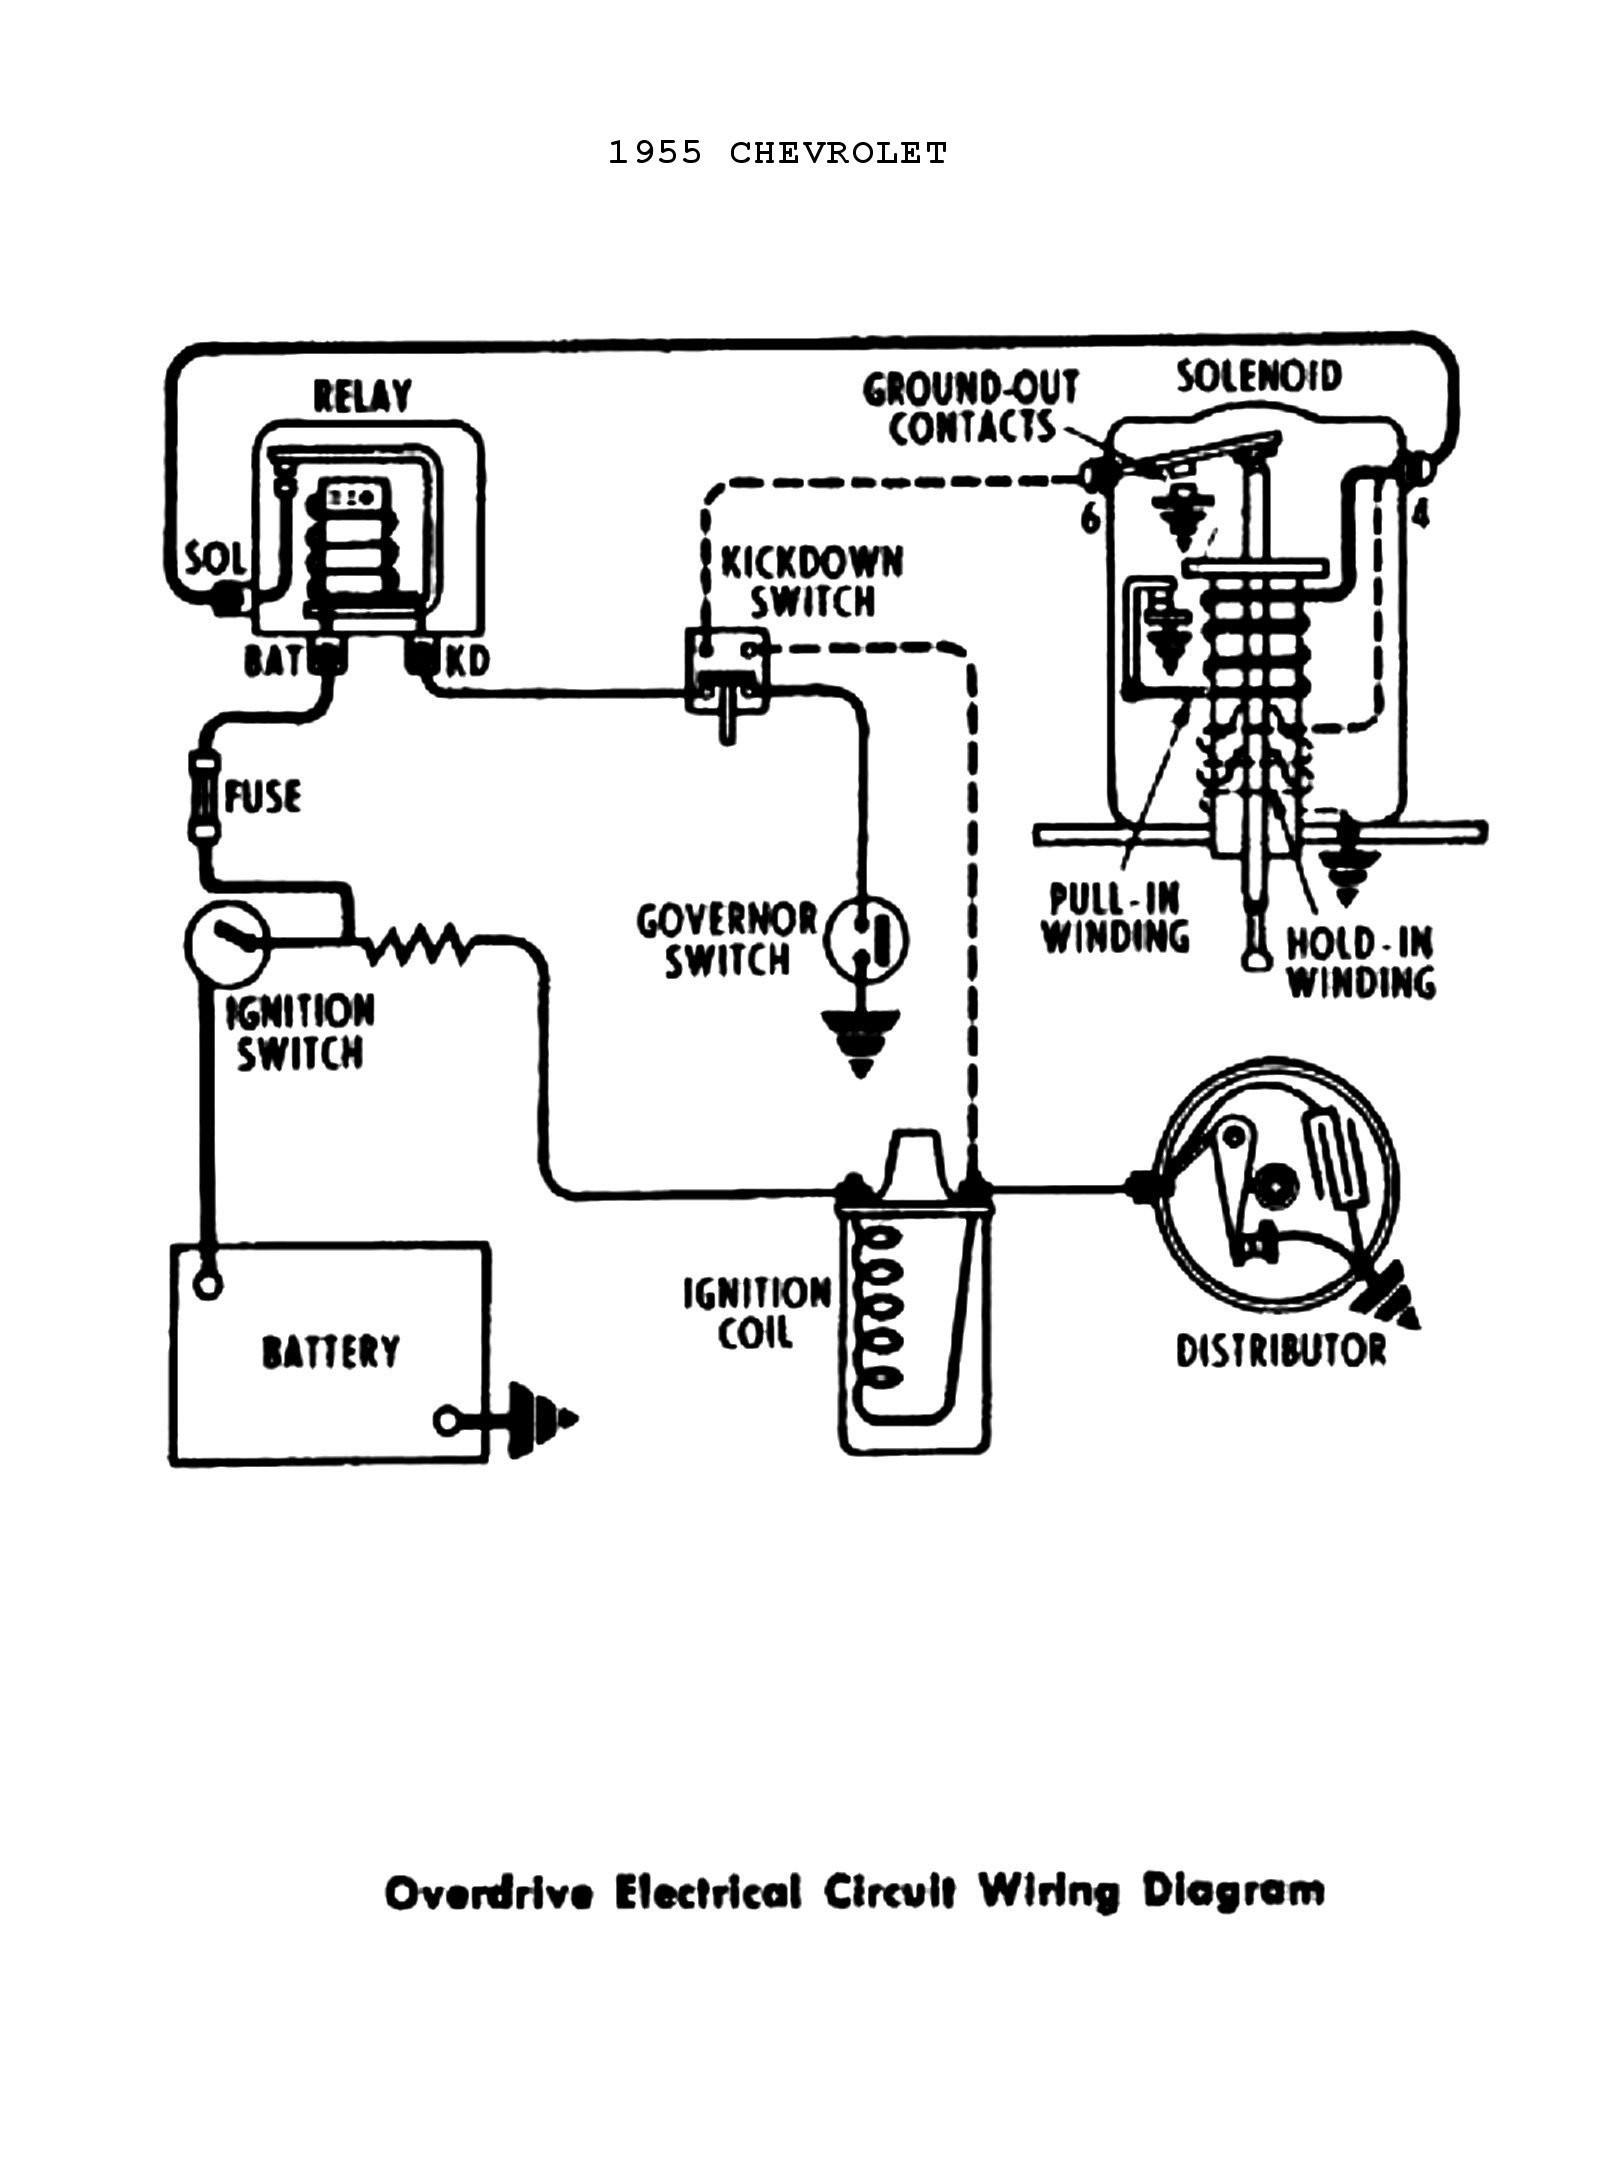 Wiring Diagram for Car Battery Refrence Car Ignition System Wiring Diagram Ignition Switch Wiring Diagram